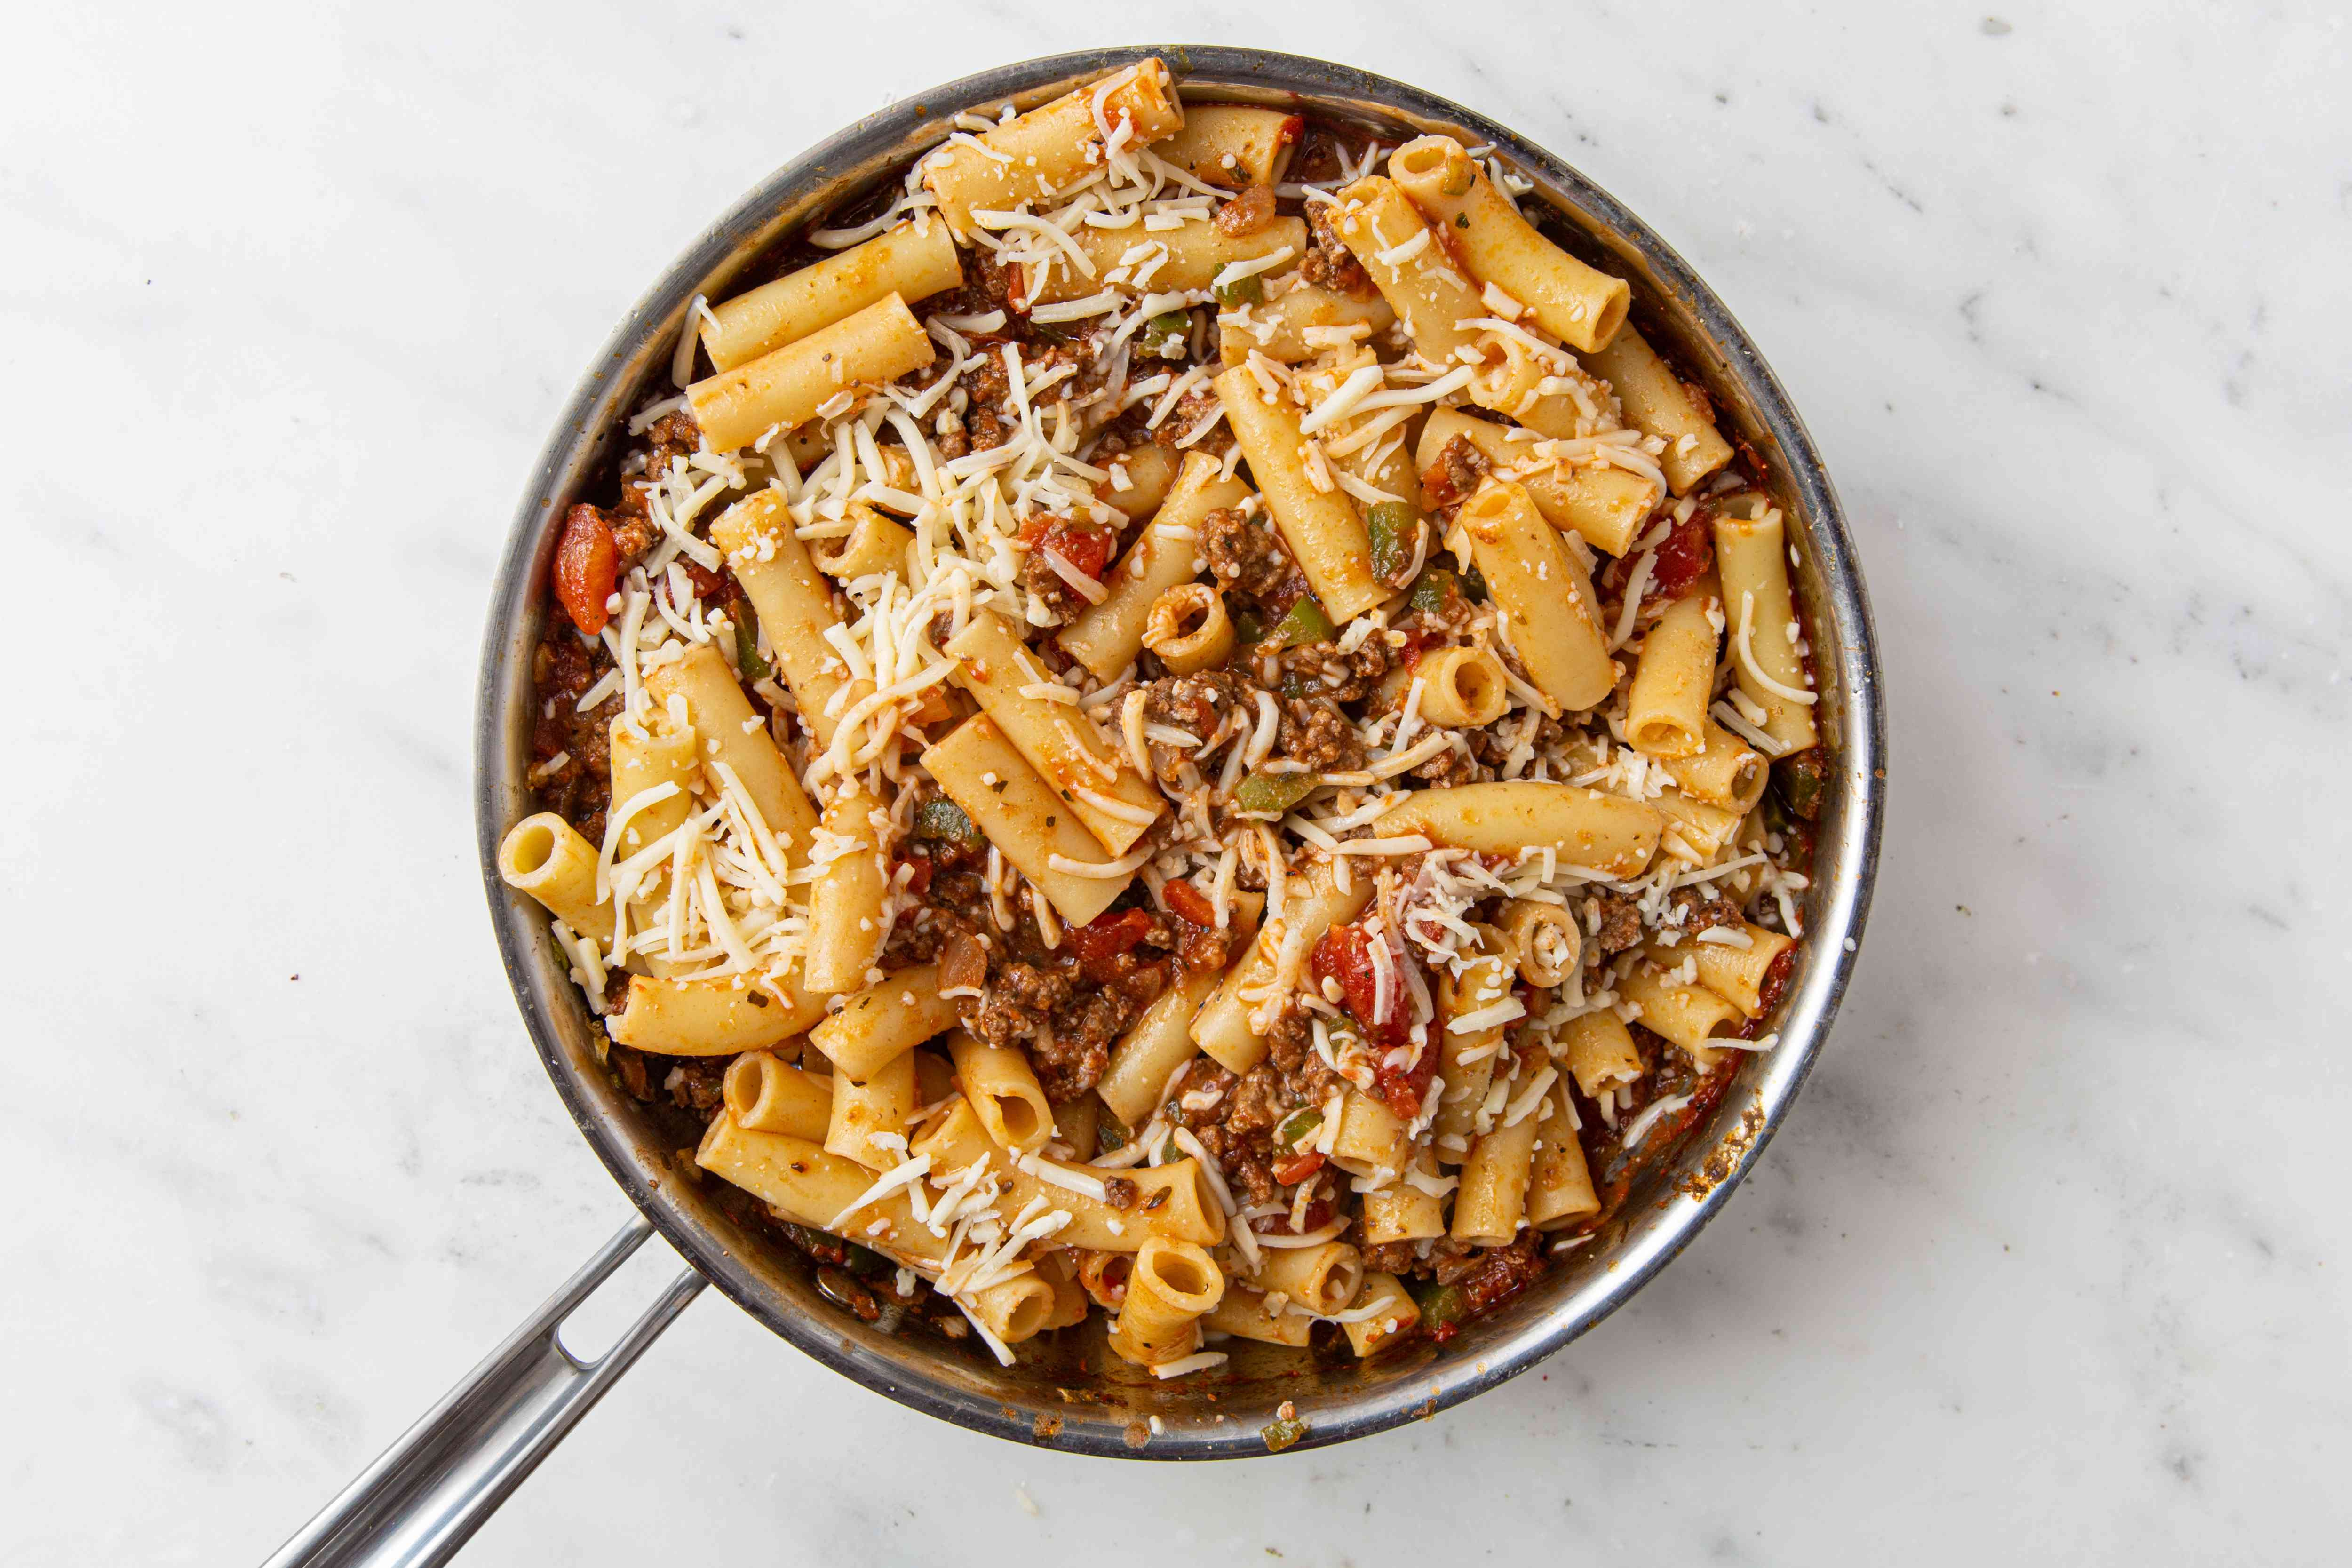 Tomato sauce, ground beef and ziti in a pan